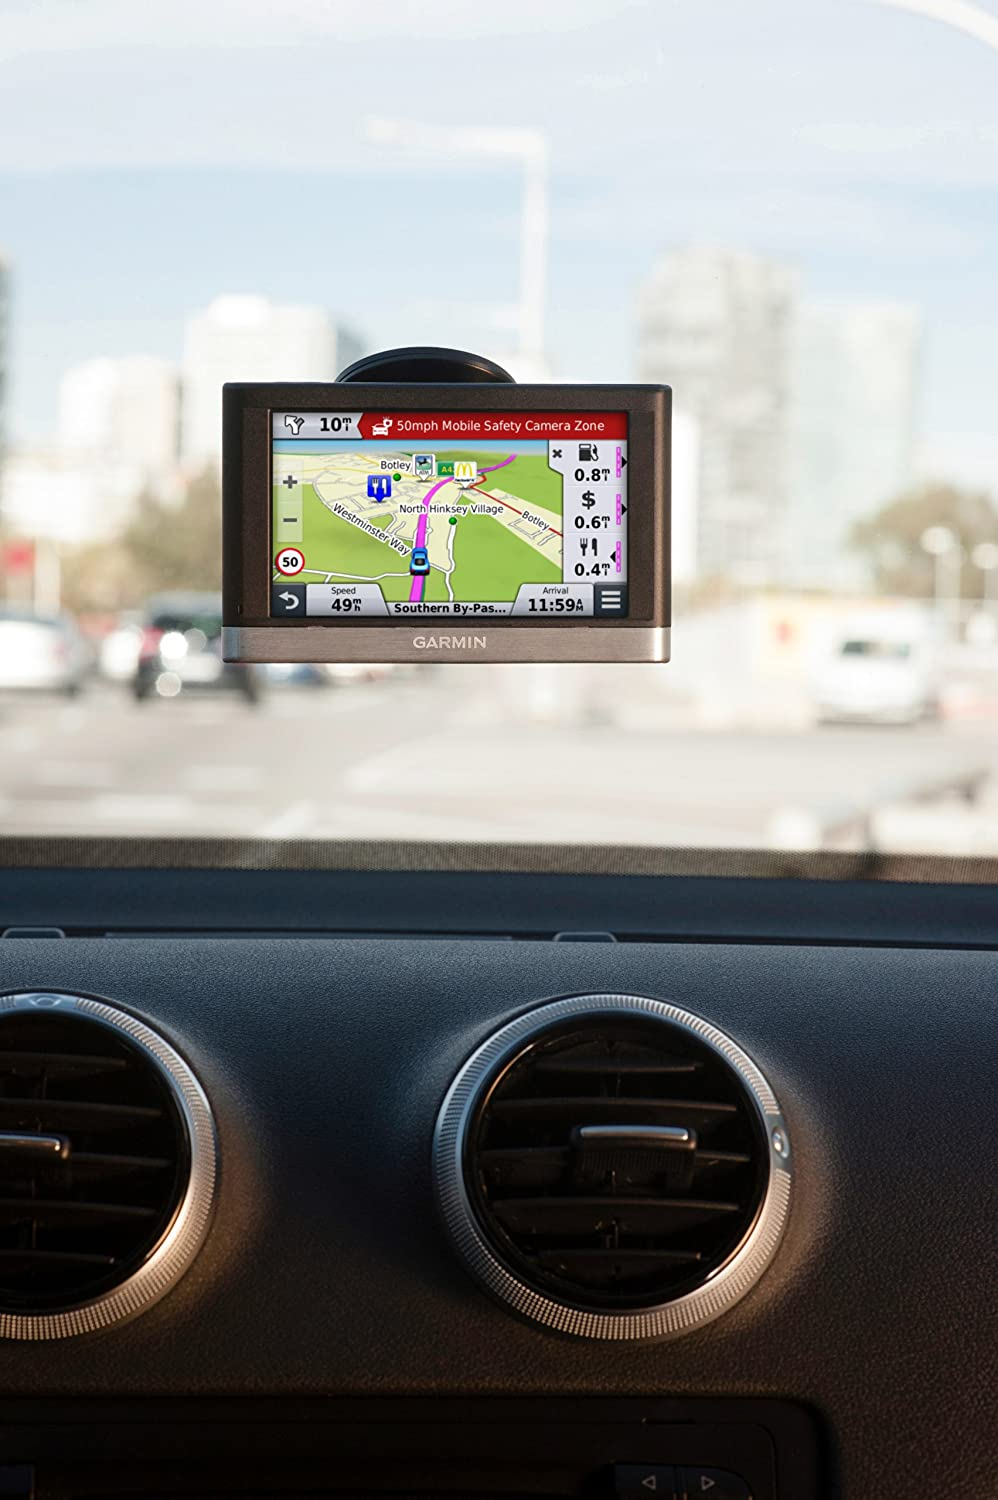 Garmin Nuvi LMTD Sat Nav With UK And Western Europe Maps - Garmin nuvi map update us region